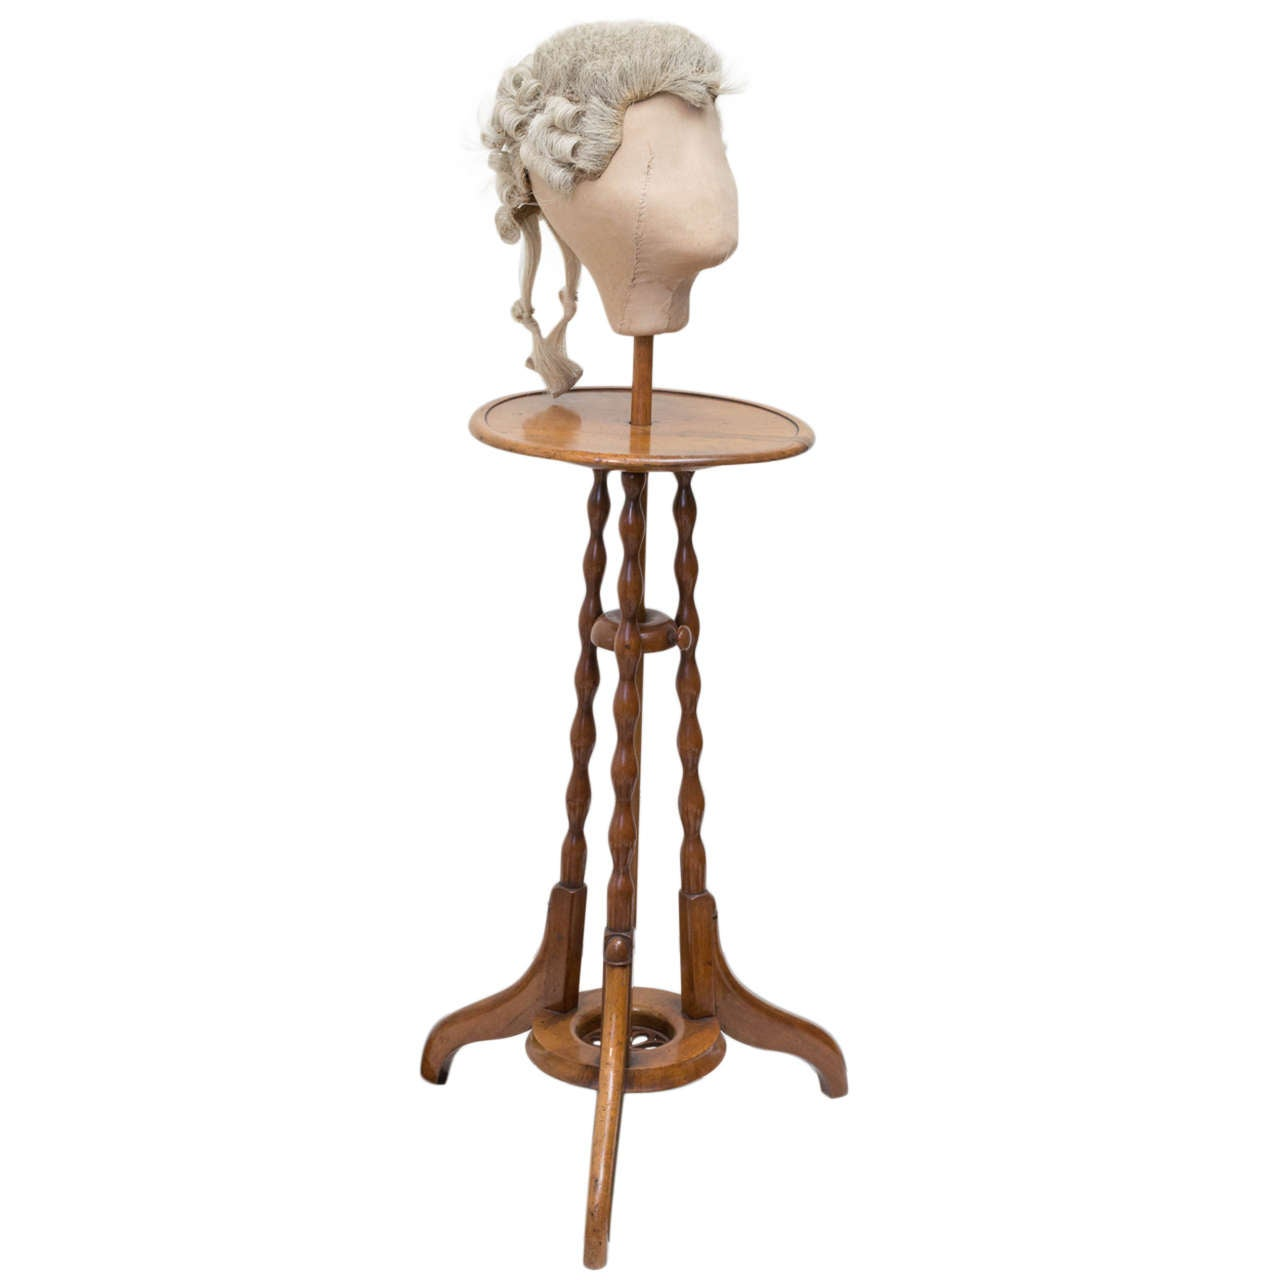 19th c. English William IV Wig  Stand With Wig